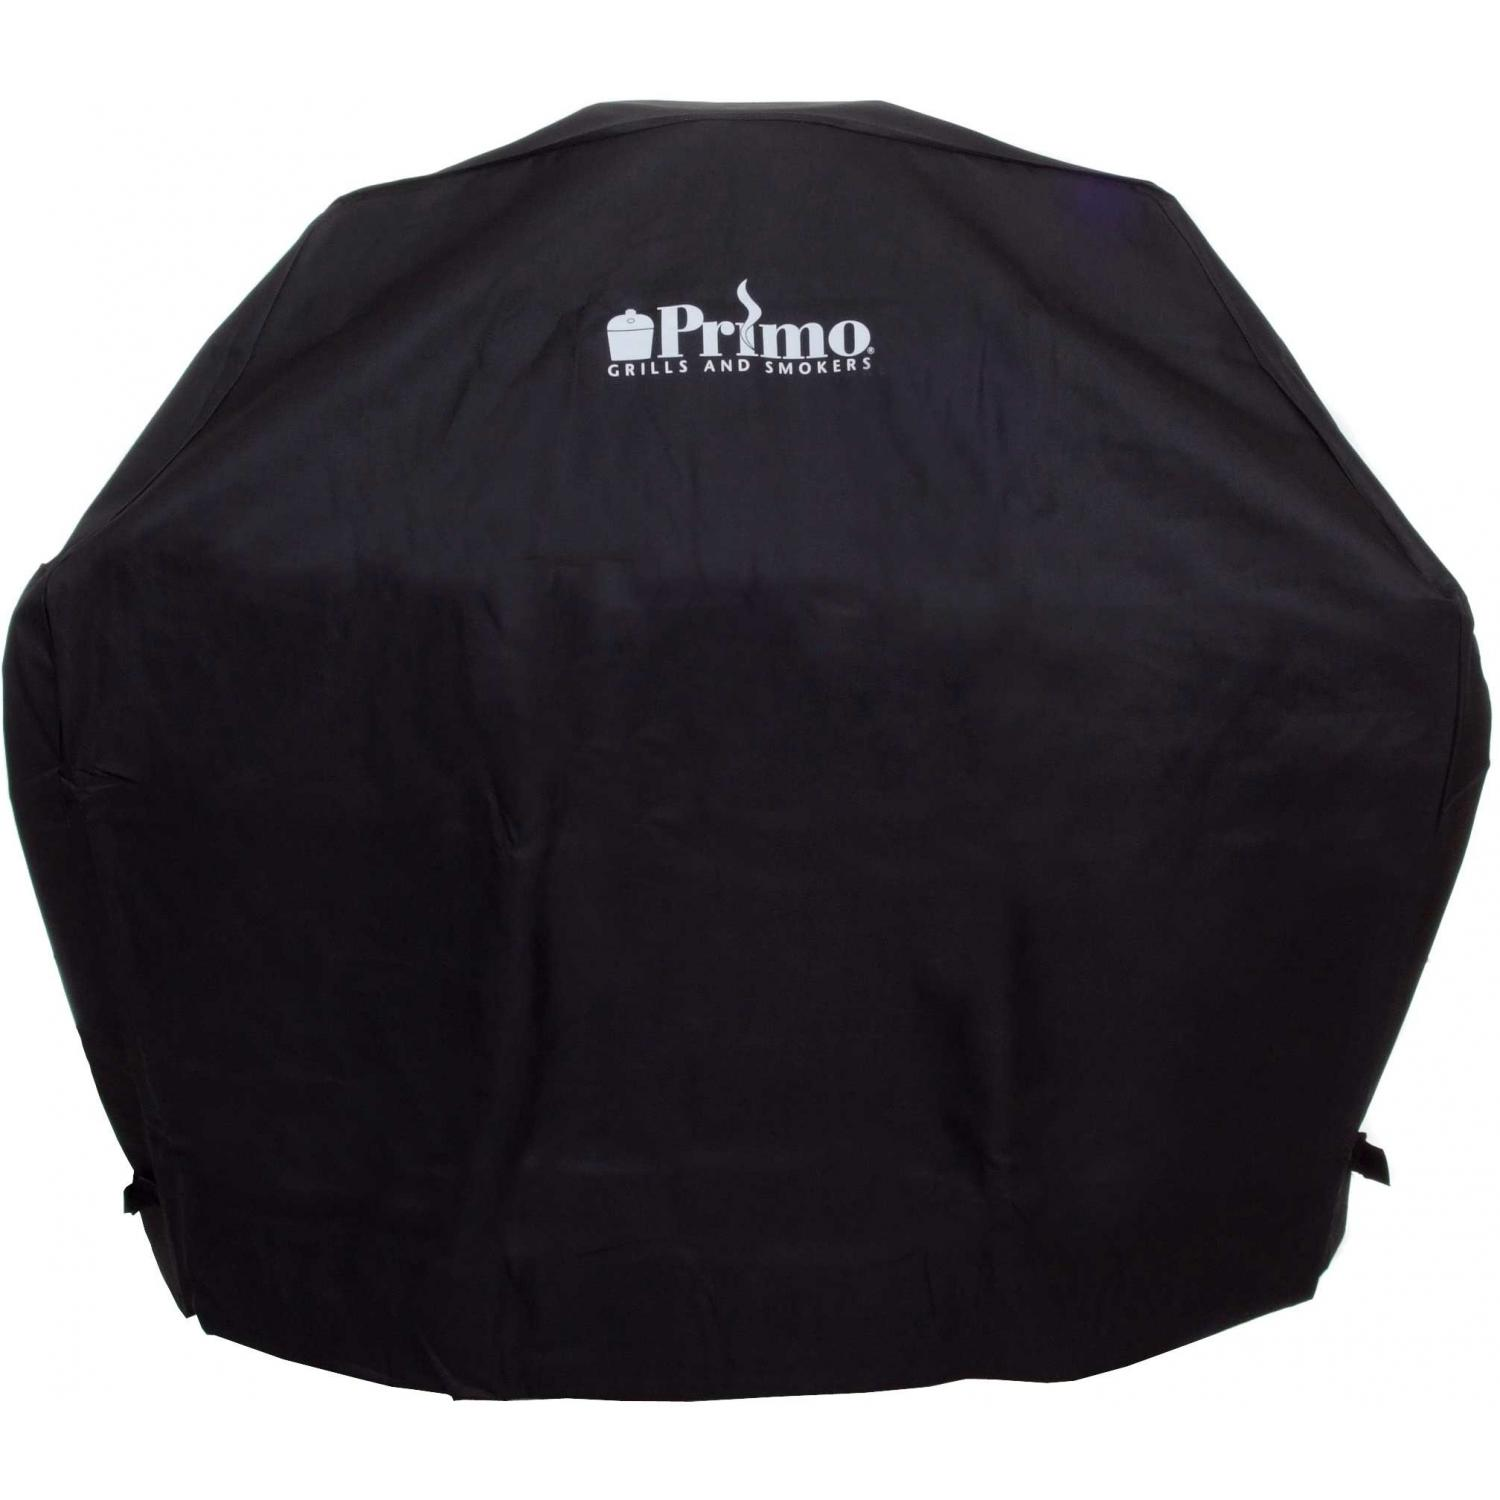 Primo Grill Cover For Junior Oval In Cradle